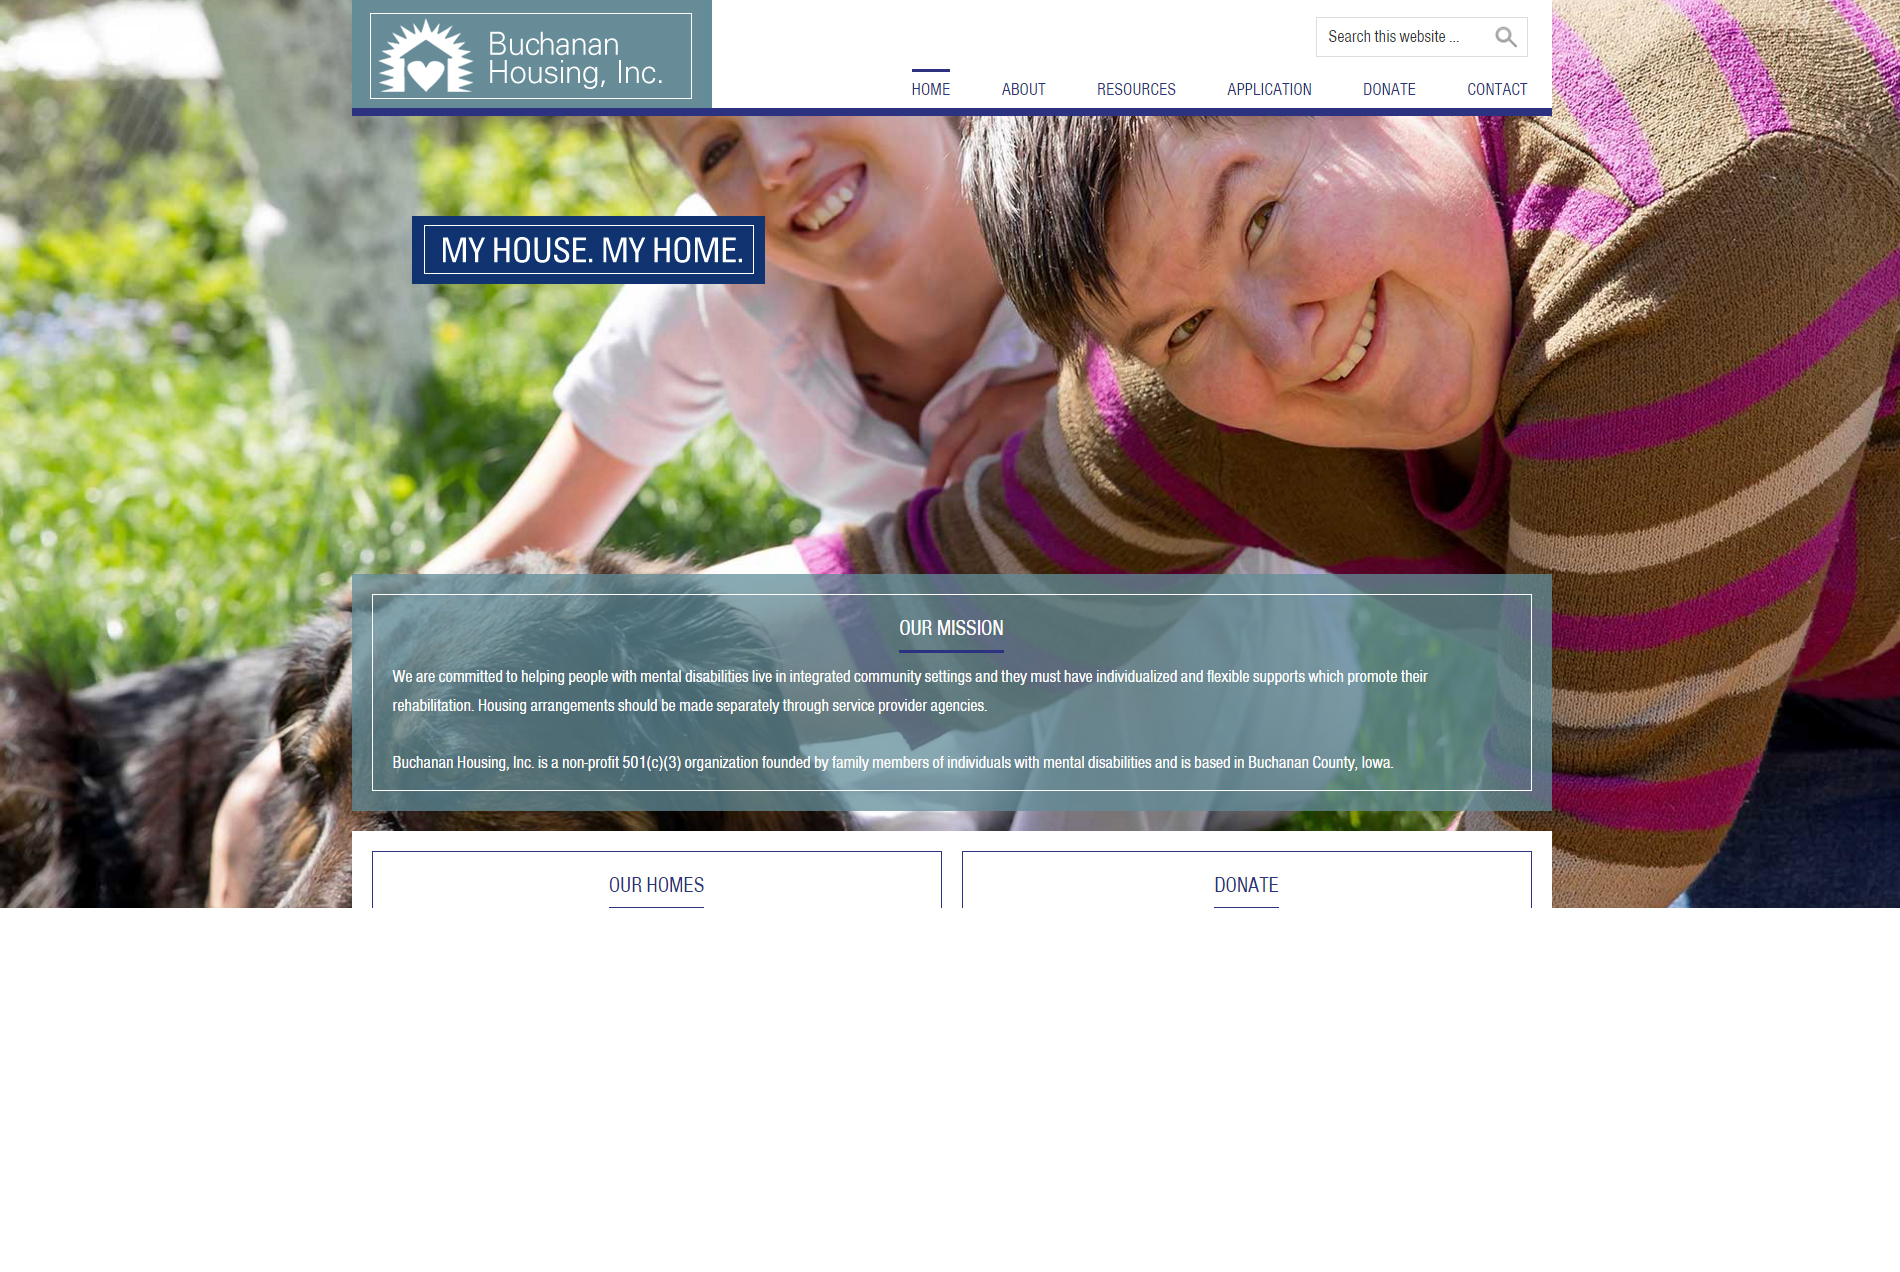 Buchanan Housing, Inc. - Website